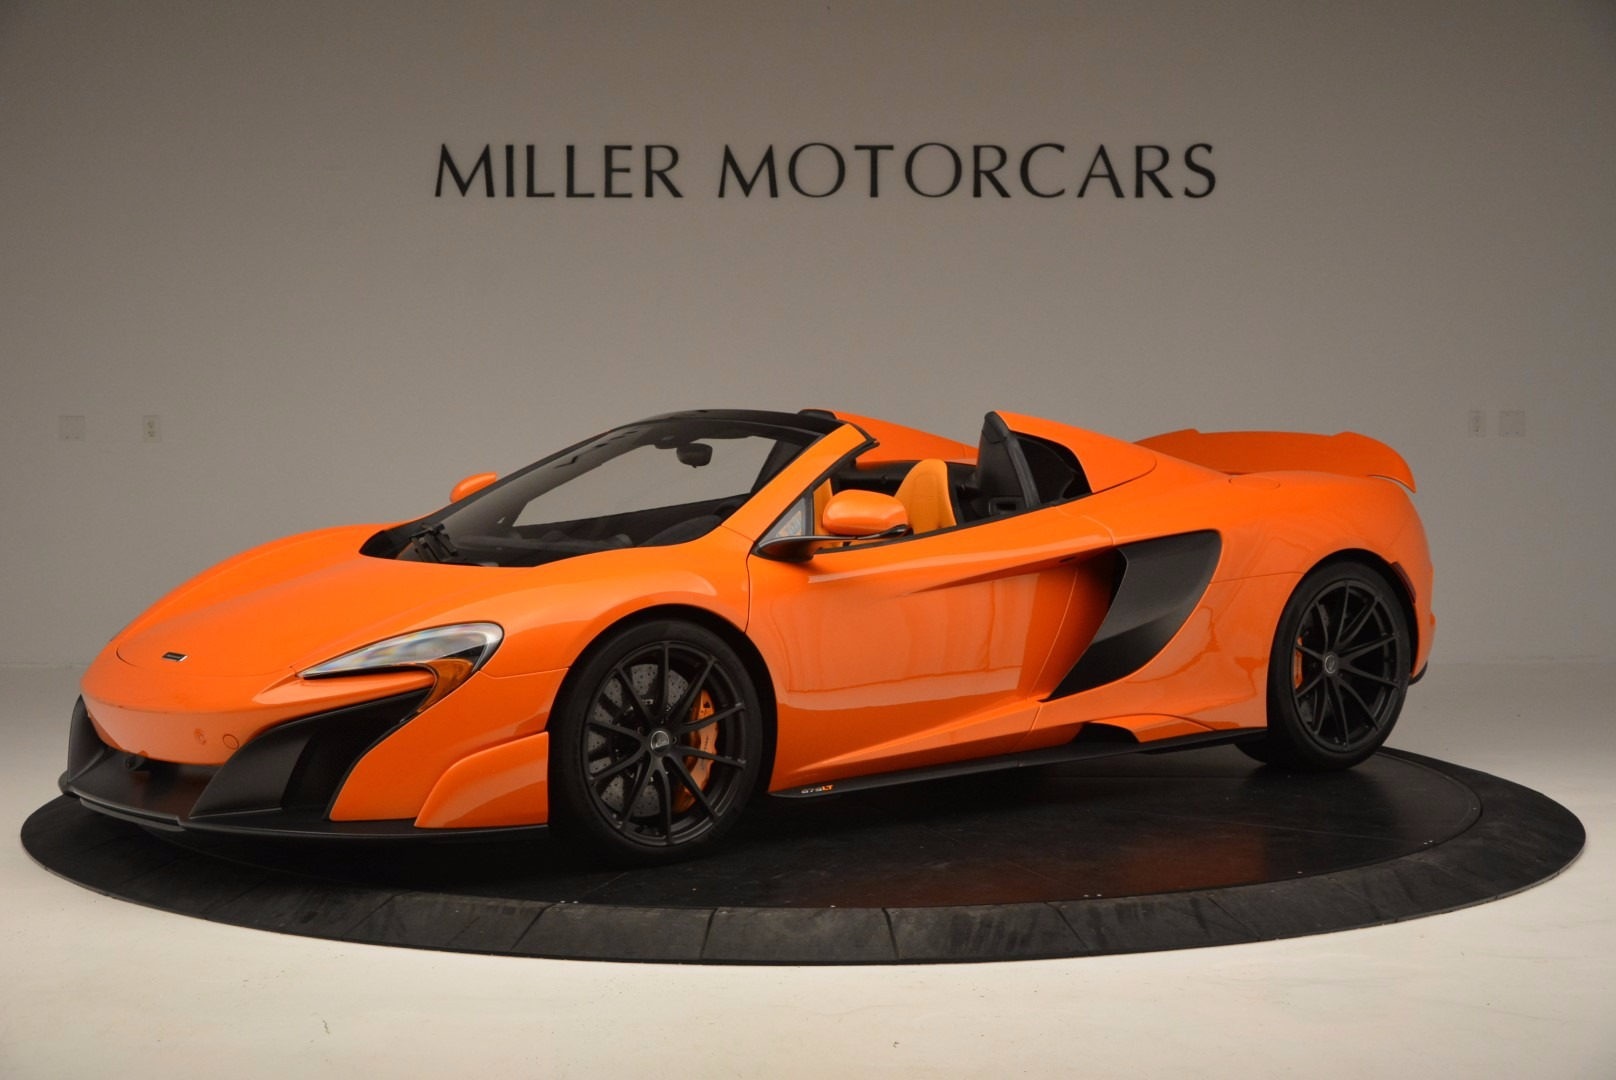 Used 2016 McLaren 675LT Spider Convertible for sale Sold at Bentley Greenwich in Greenwich CT 06830 1